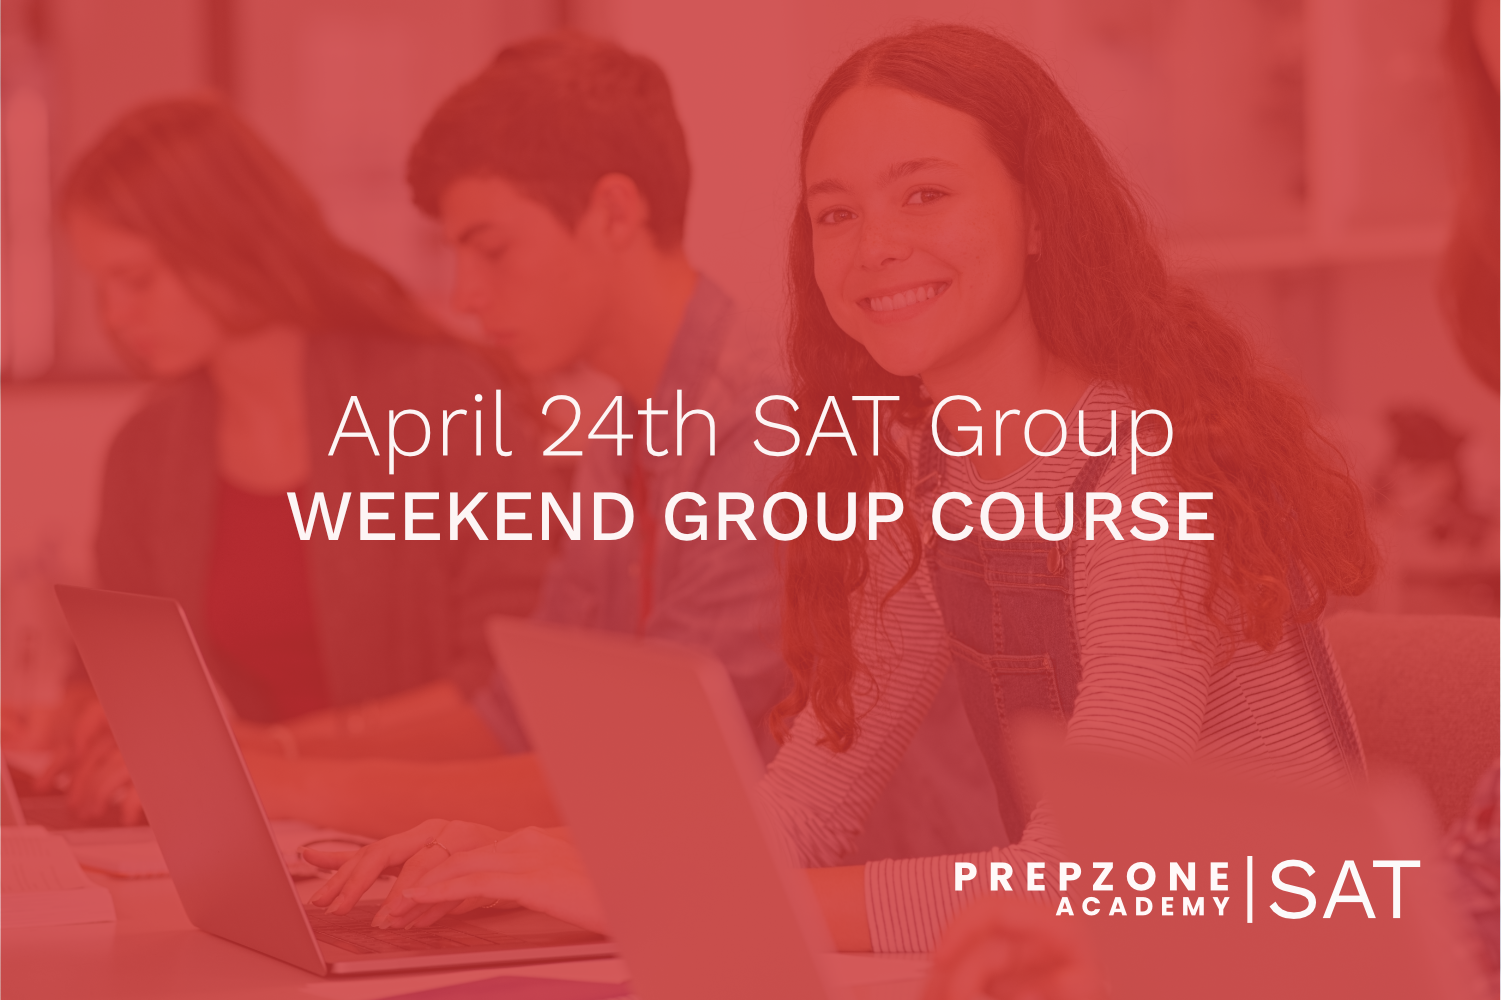 SAT Weekend Group Course Schedule – April 24th